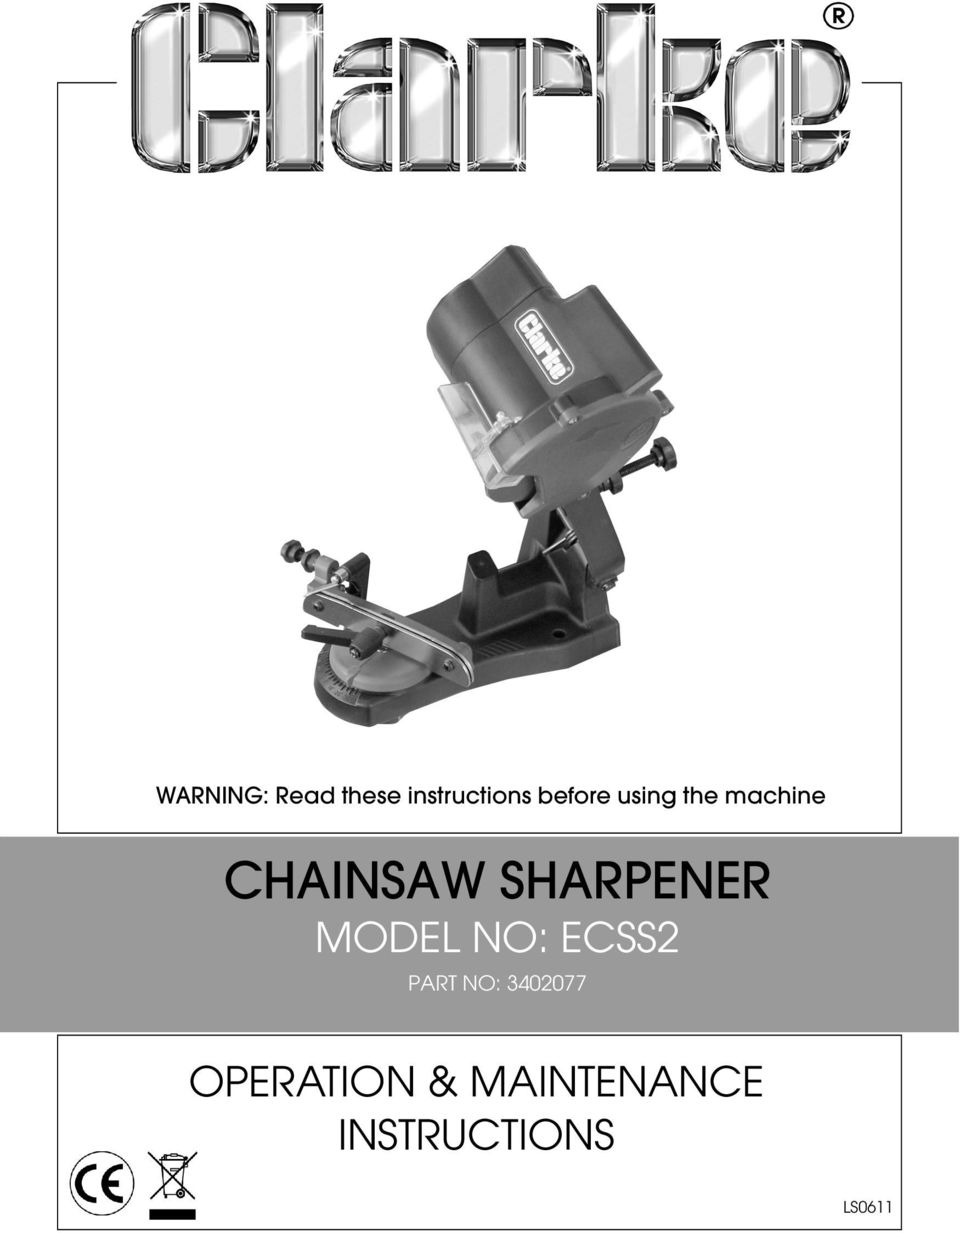 SHARPENER MODEL NO: ECSS2 PART NO: